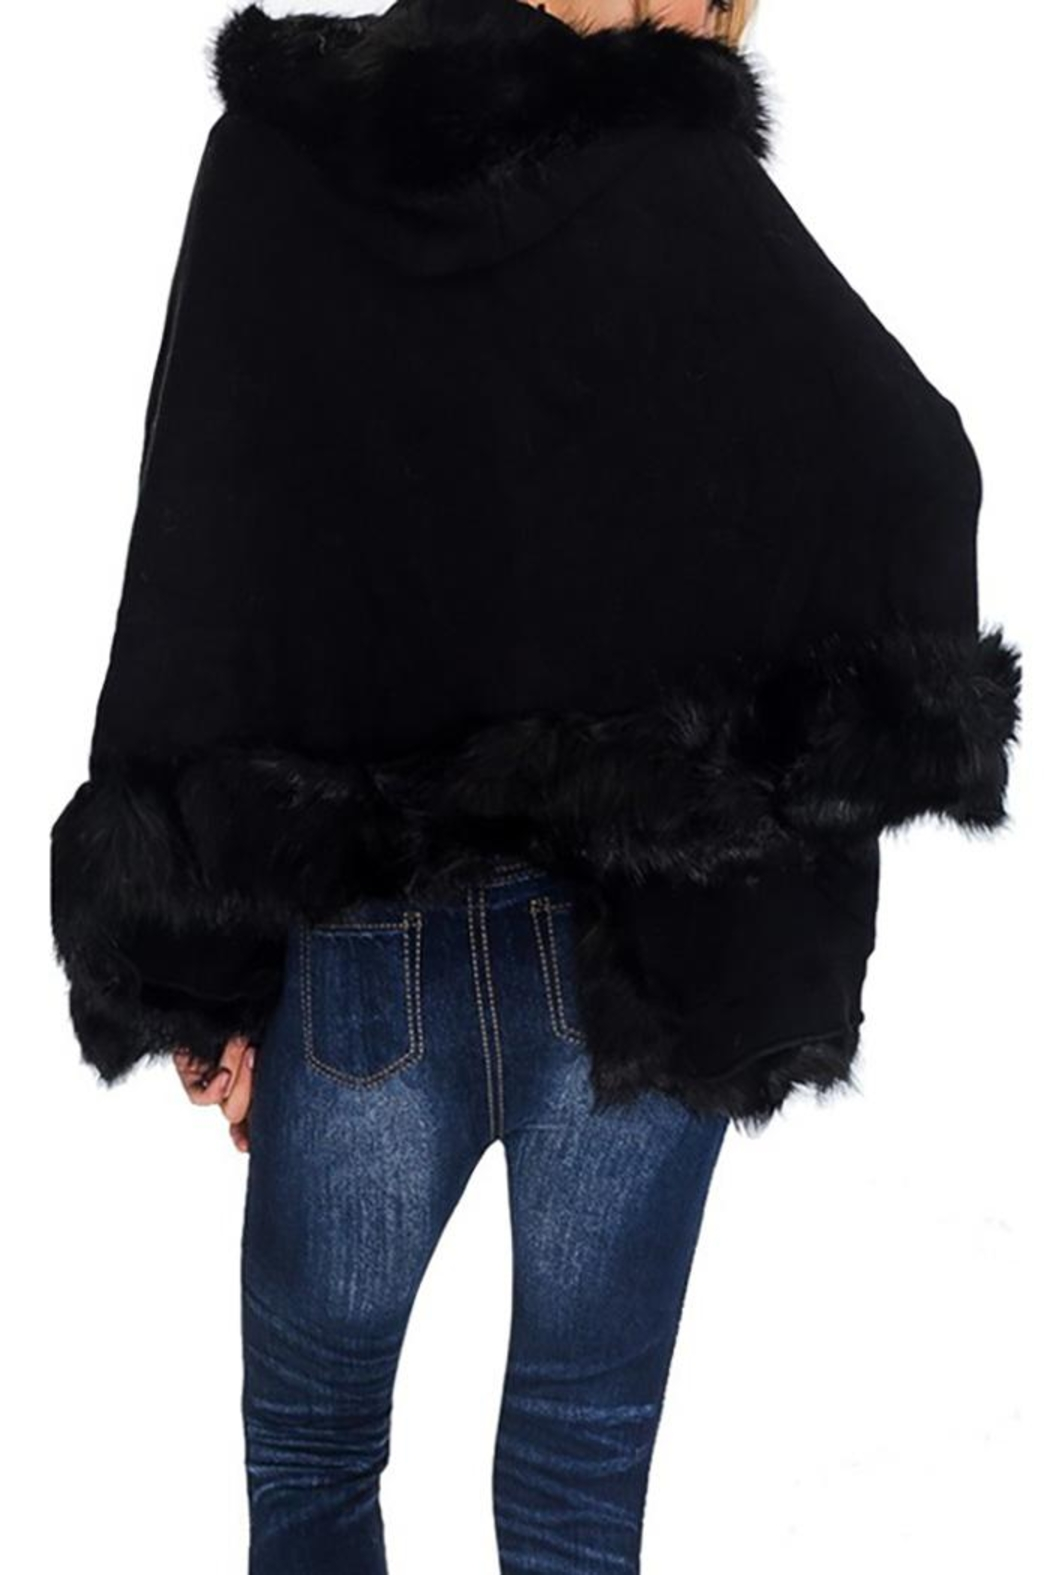 Nadya's Closet Solid Colored Trimmed Faux Fur Lined Open Silhouette Poncho - Front Full Image